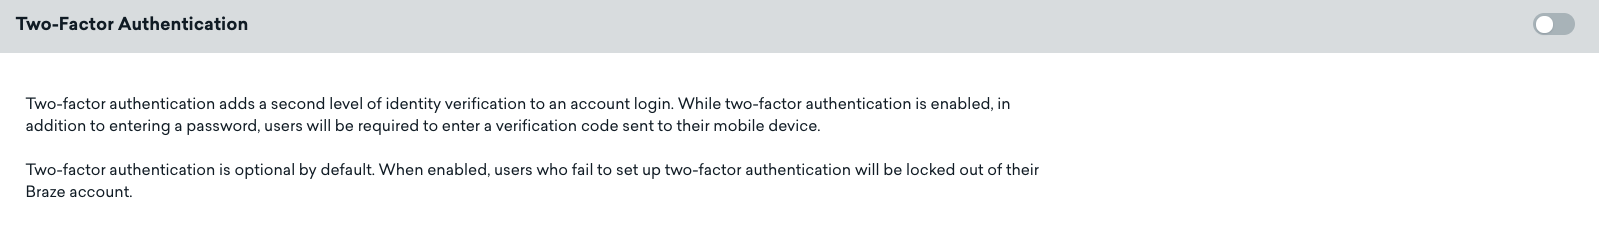 Two-Factor Authentication - Company Settings